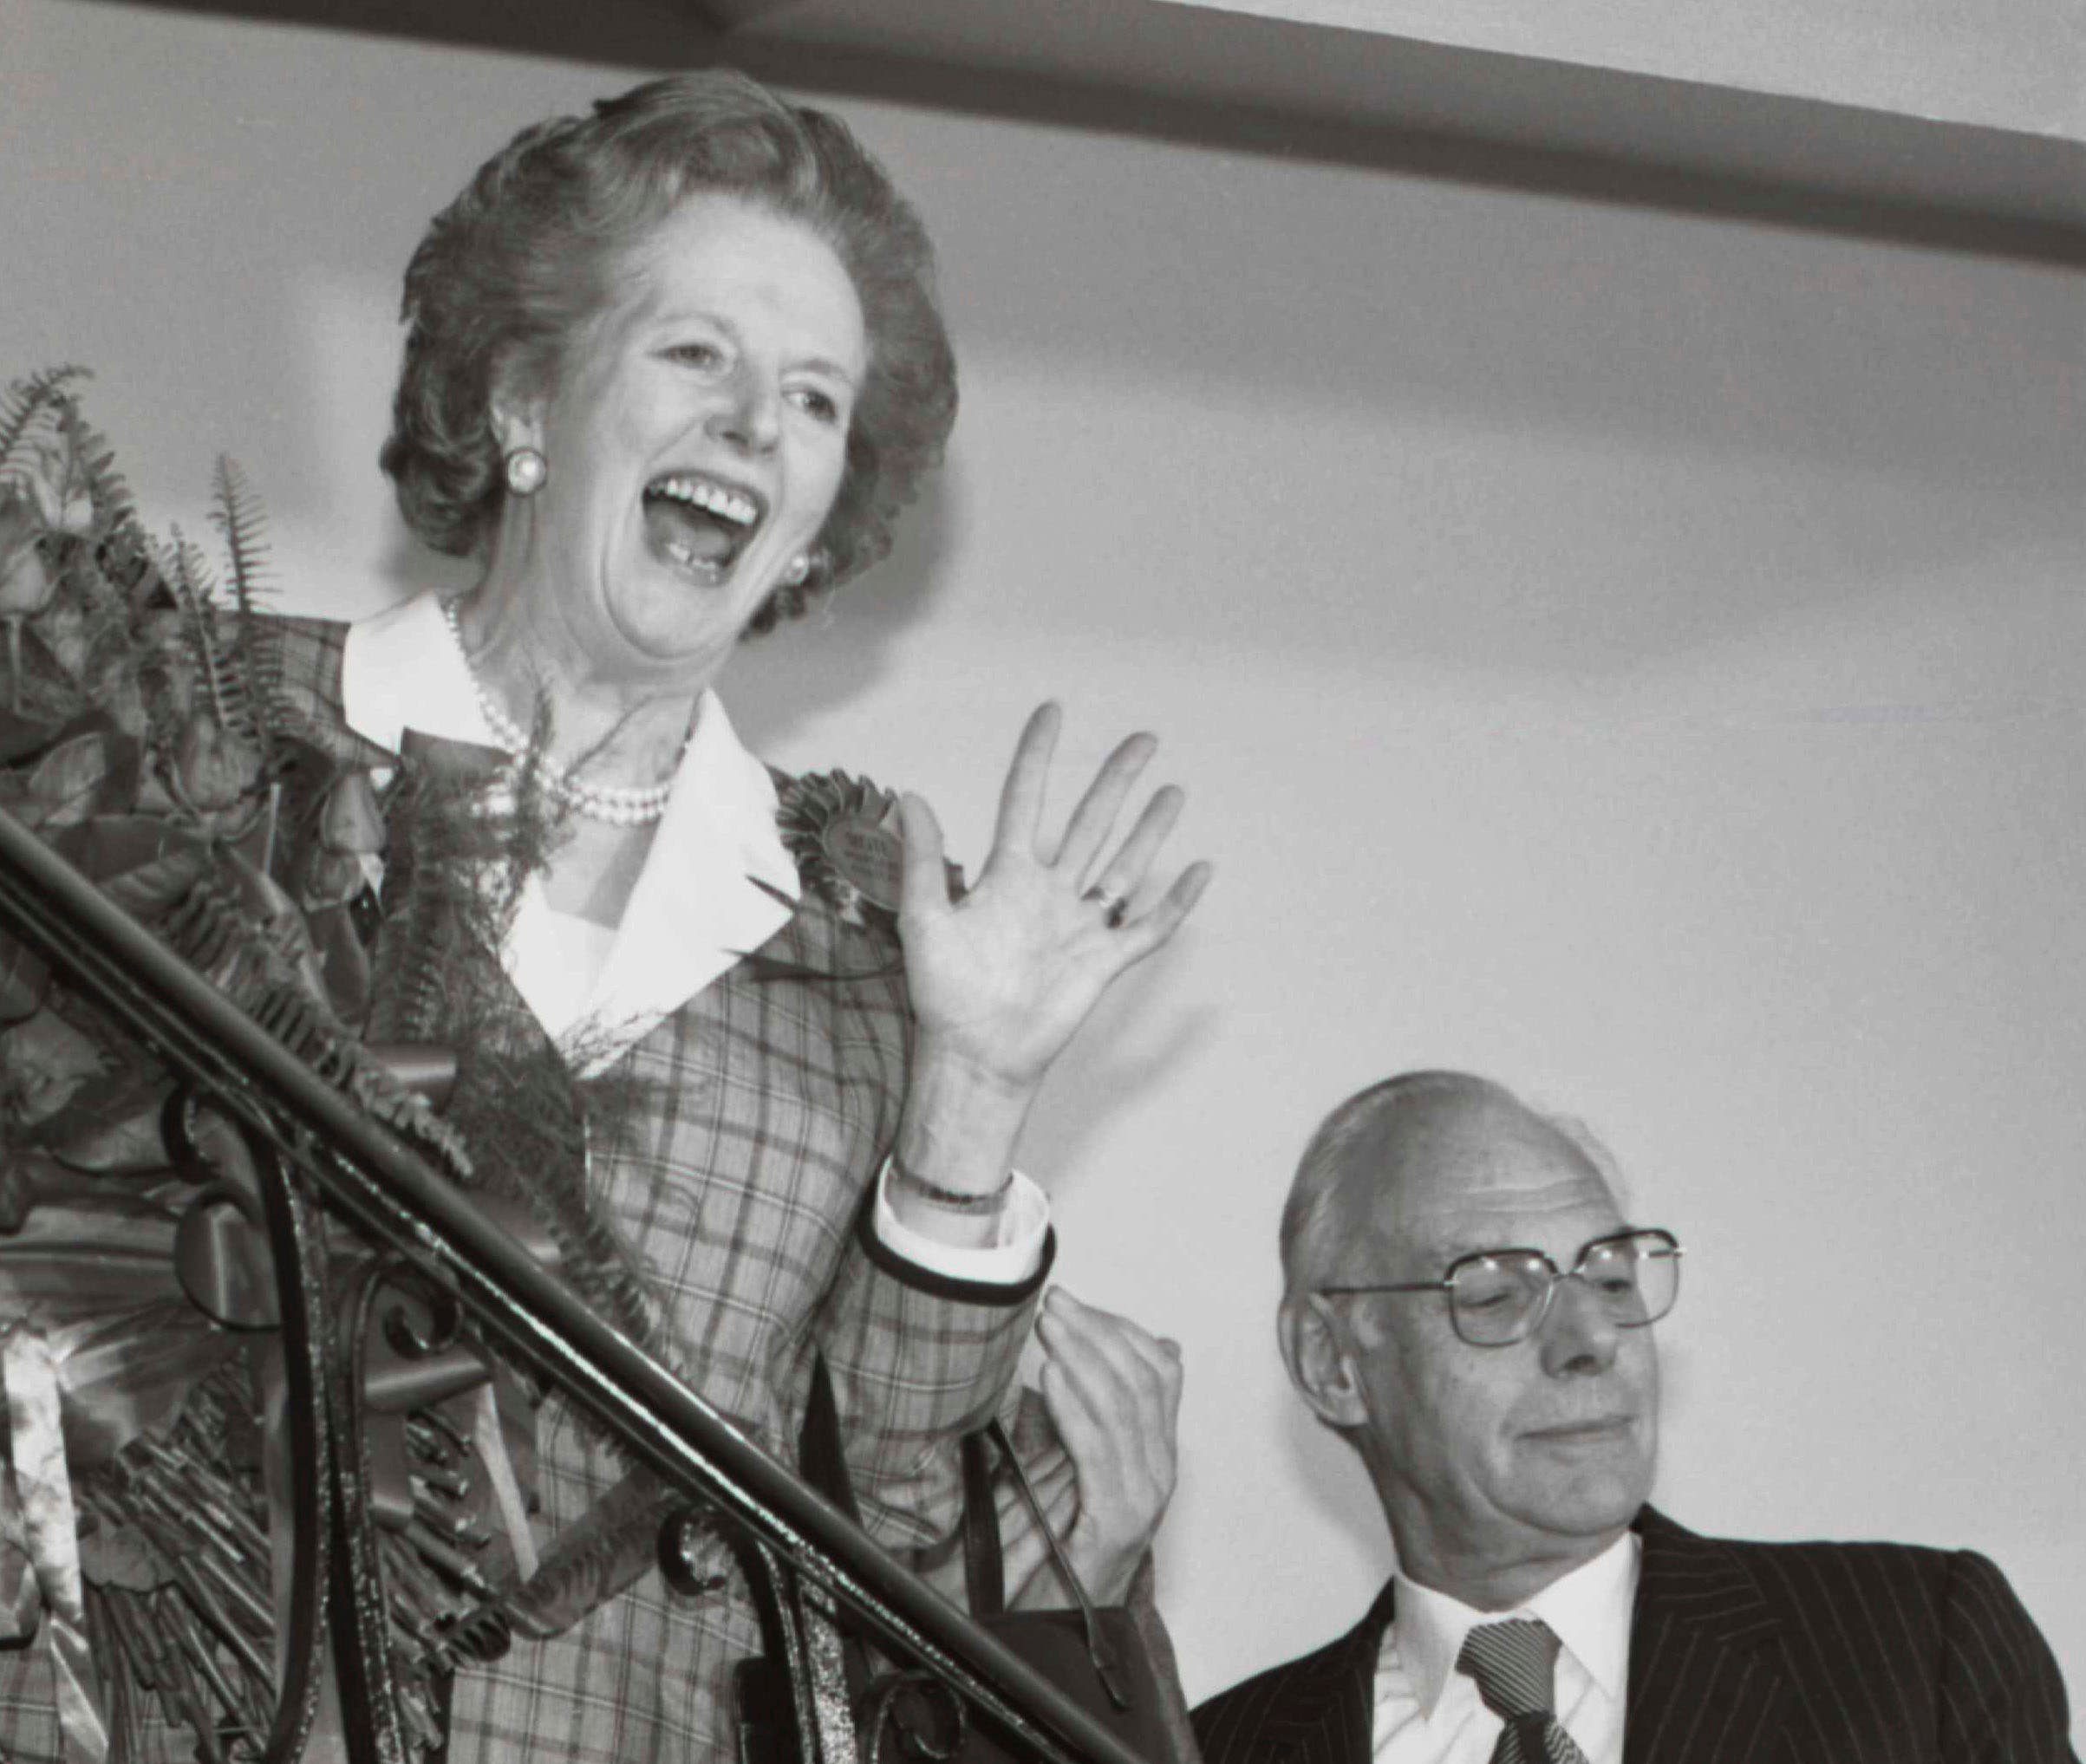 Britain's Prime Minister Margaret Thatcher gives a jubilant wave from the stairs inside her Conservative party headquarters in London early in this June 12, 1987 file photo, after sweeping back to power for a third consecutive term of office after the general election. (Reuters)